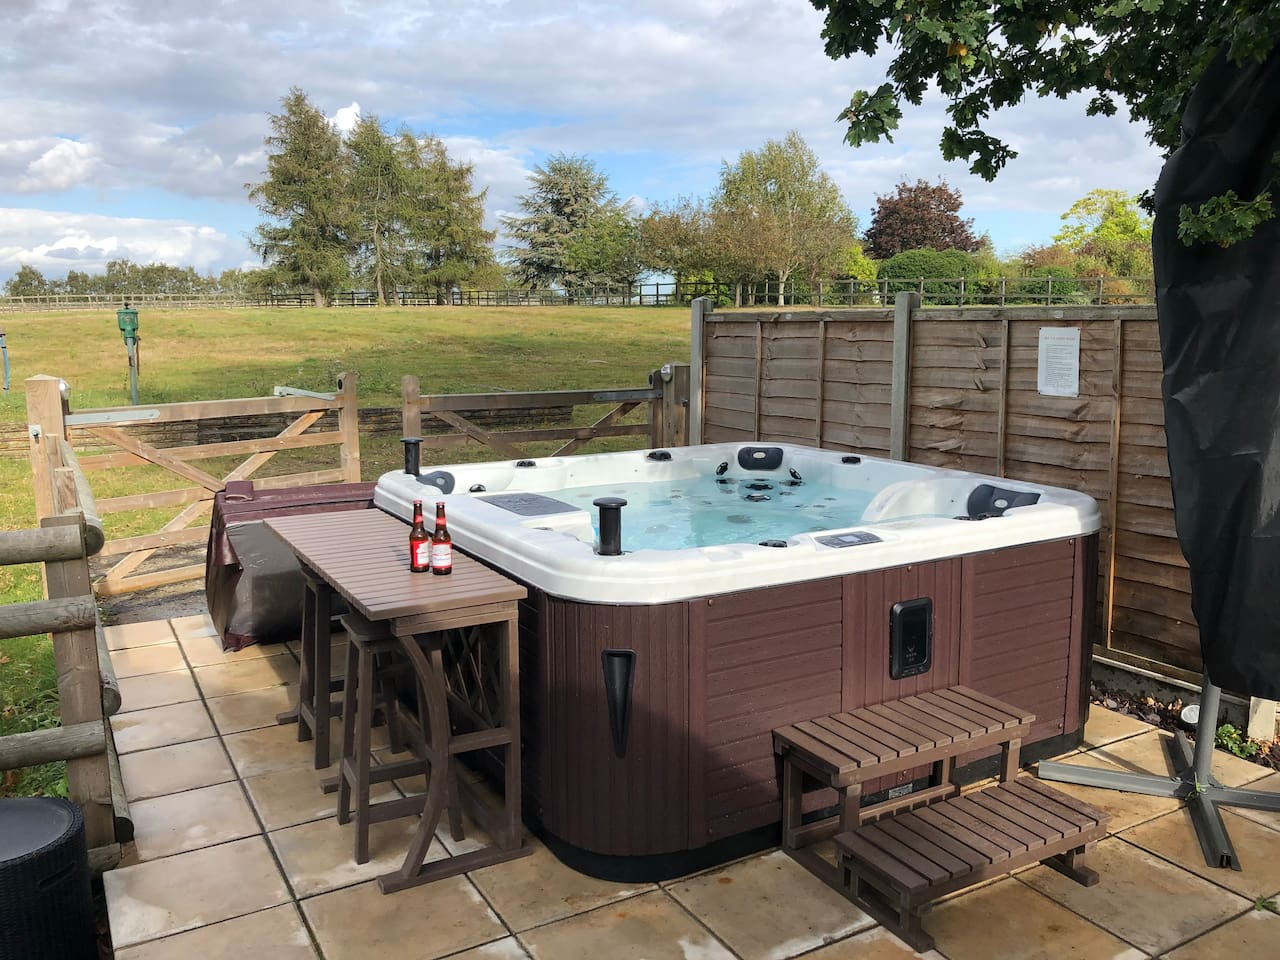 New hot tub installed September 2019 - with a bar!